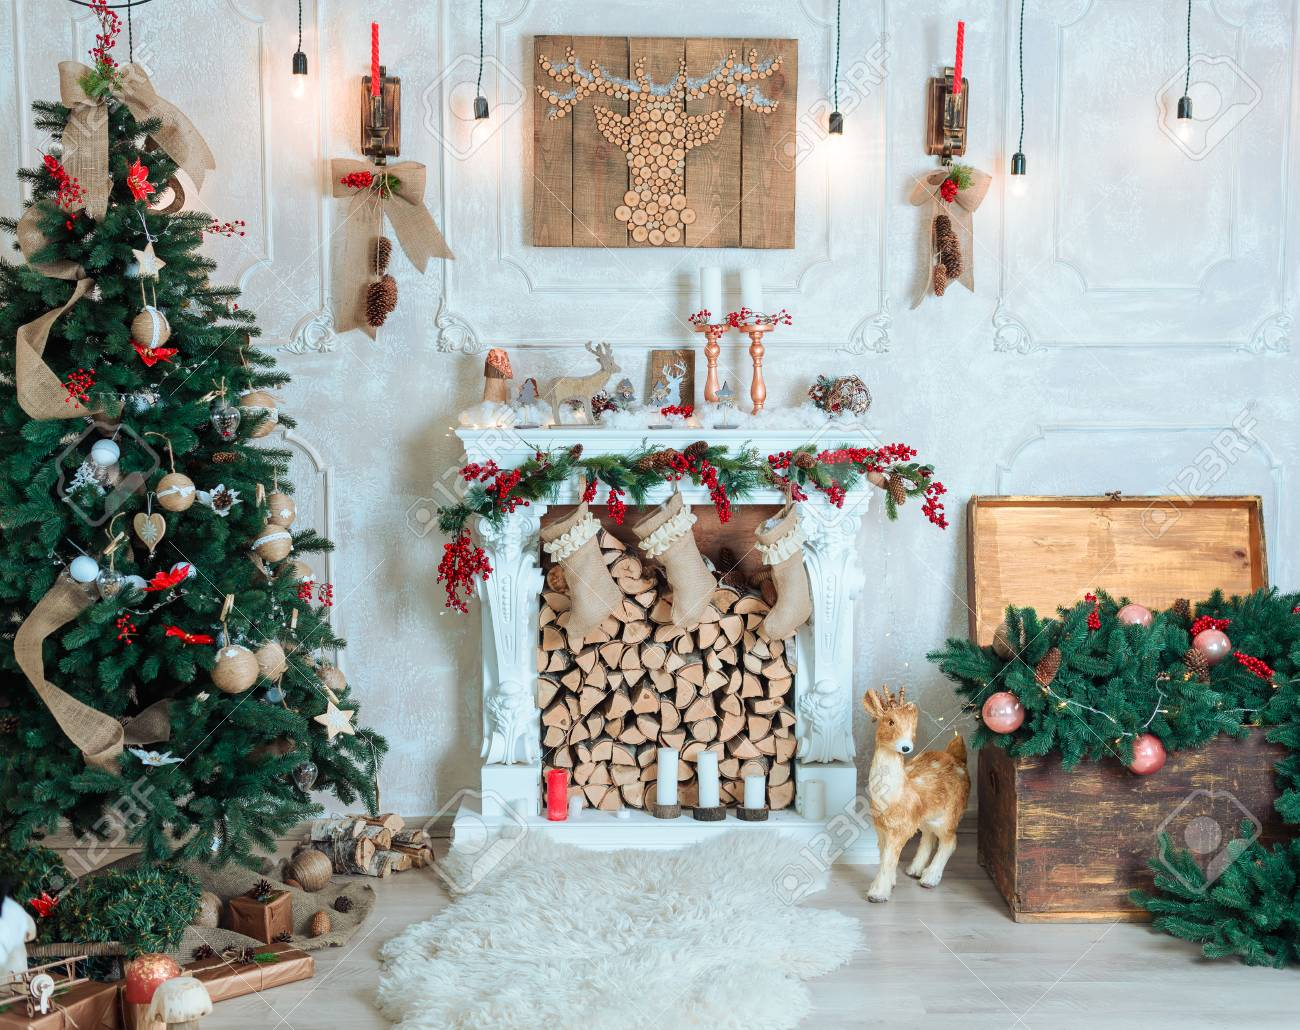 Beautiful Holiday Decorated Room With Christmas Tree Fireplace